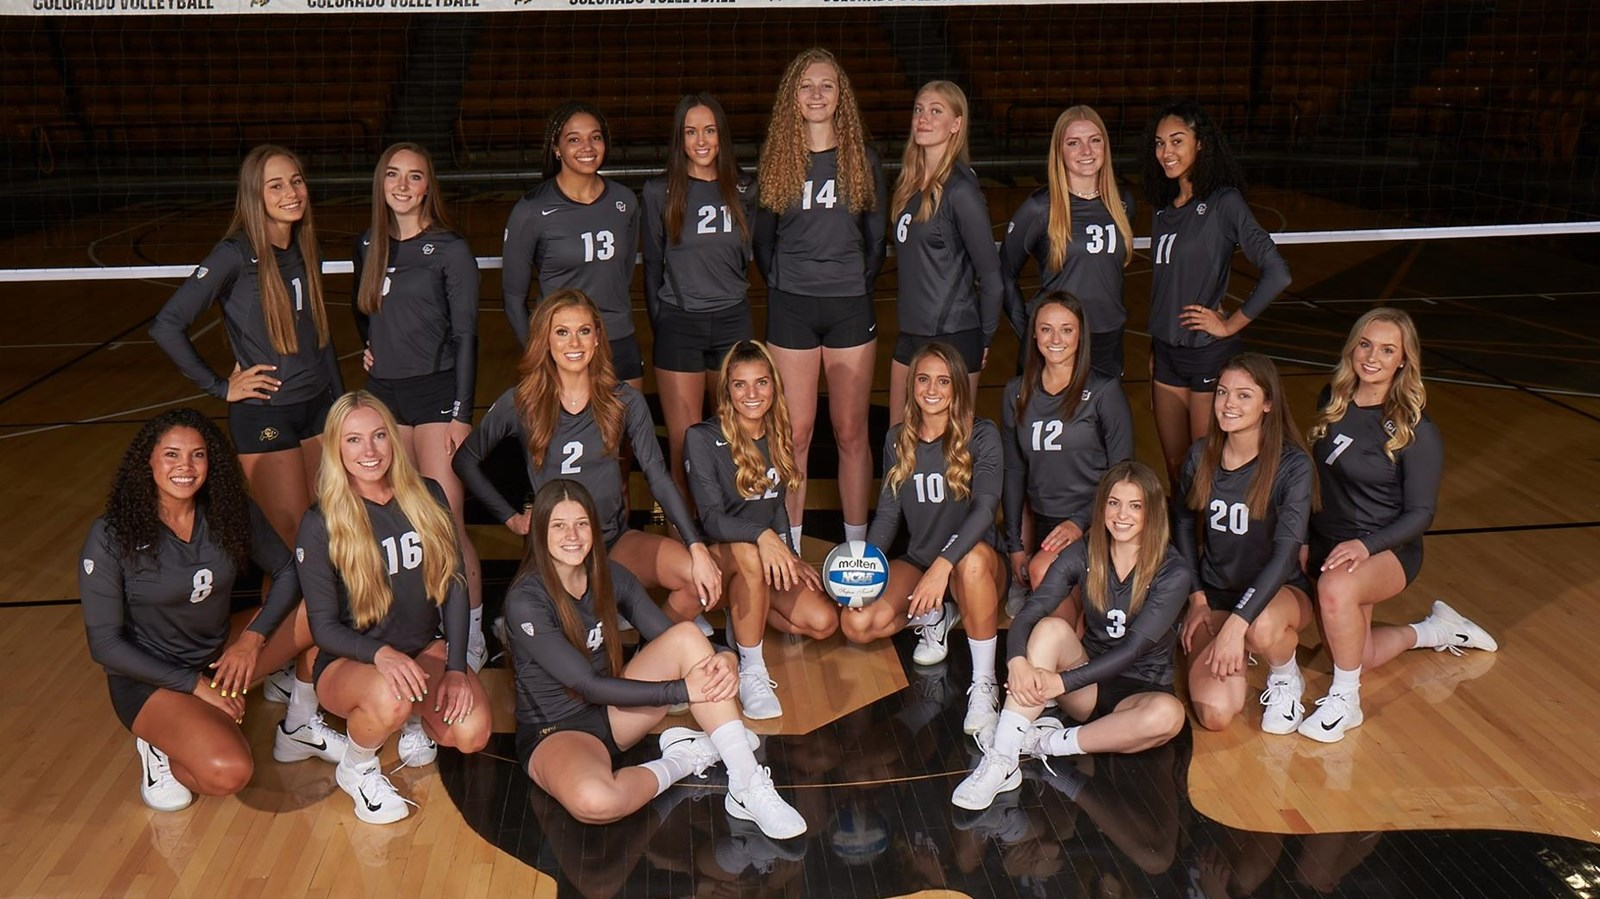 2019 Volleyball Roster University Of Colorado Athletics